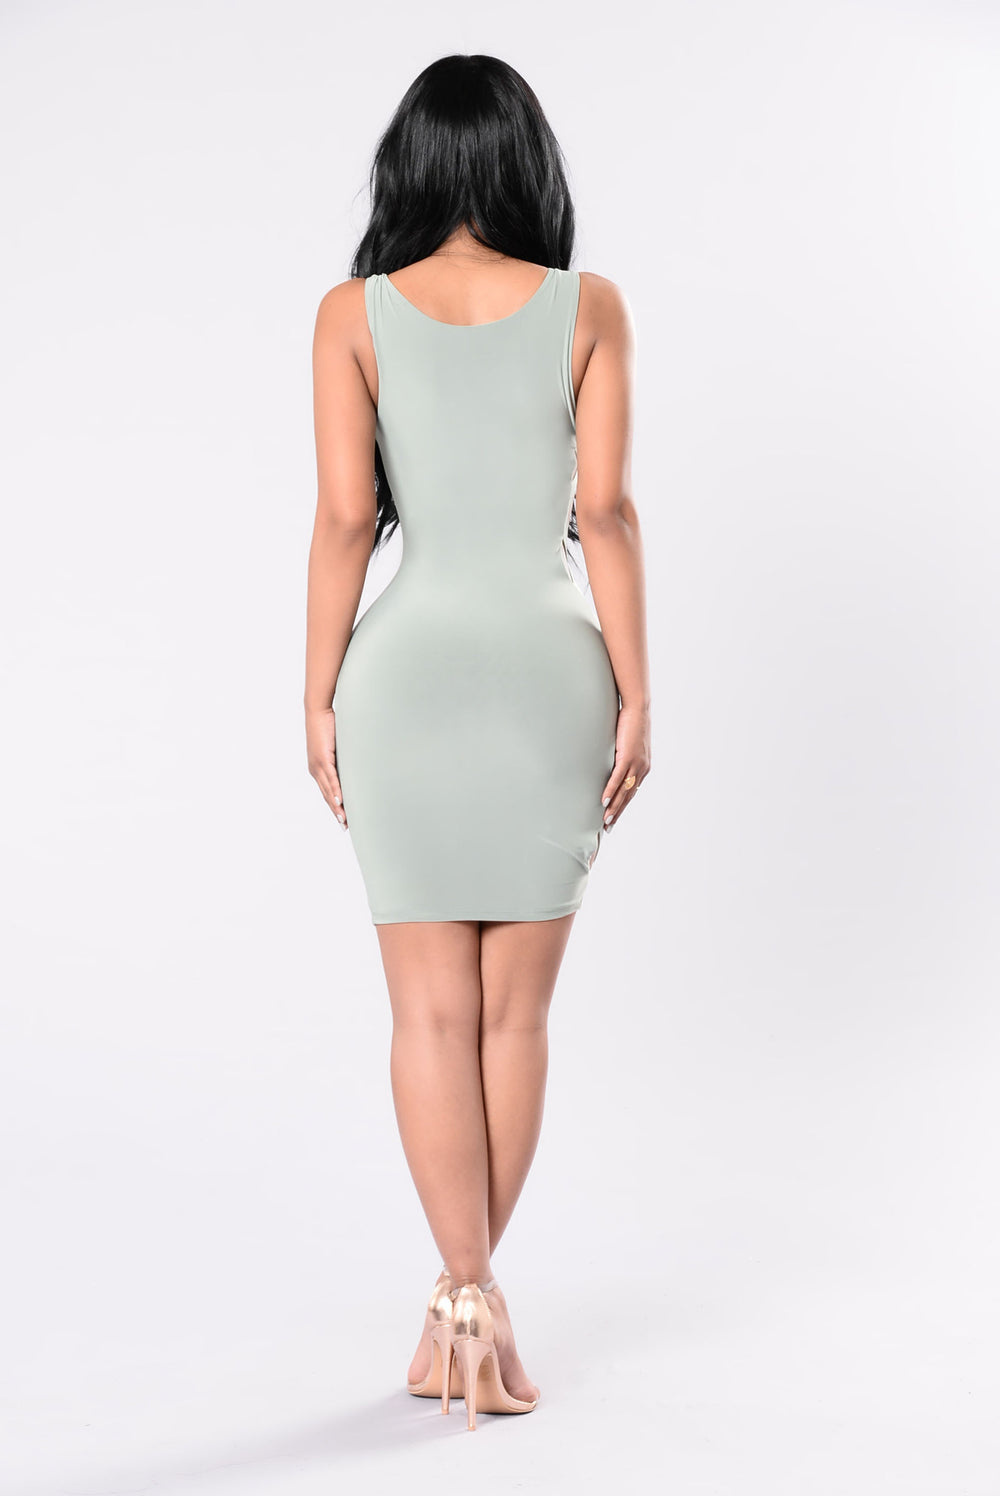 See It To The End Dress - Sage